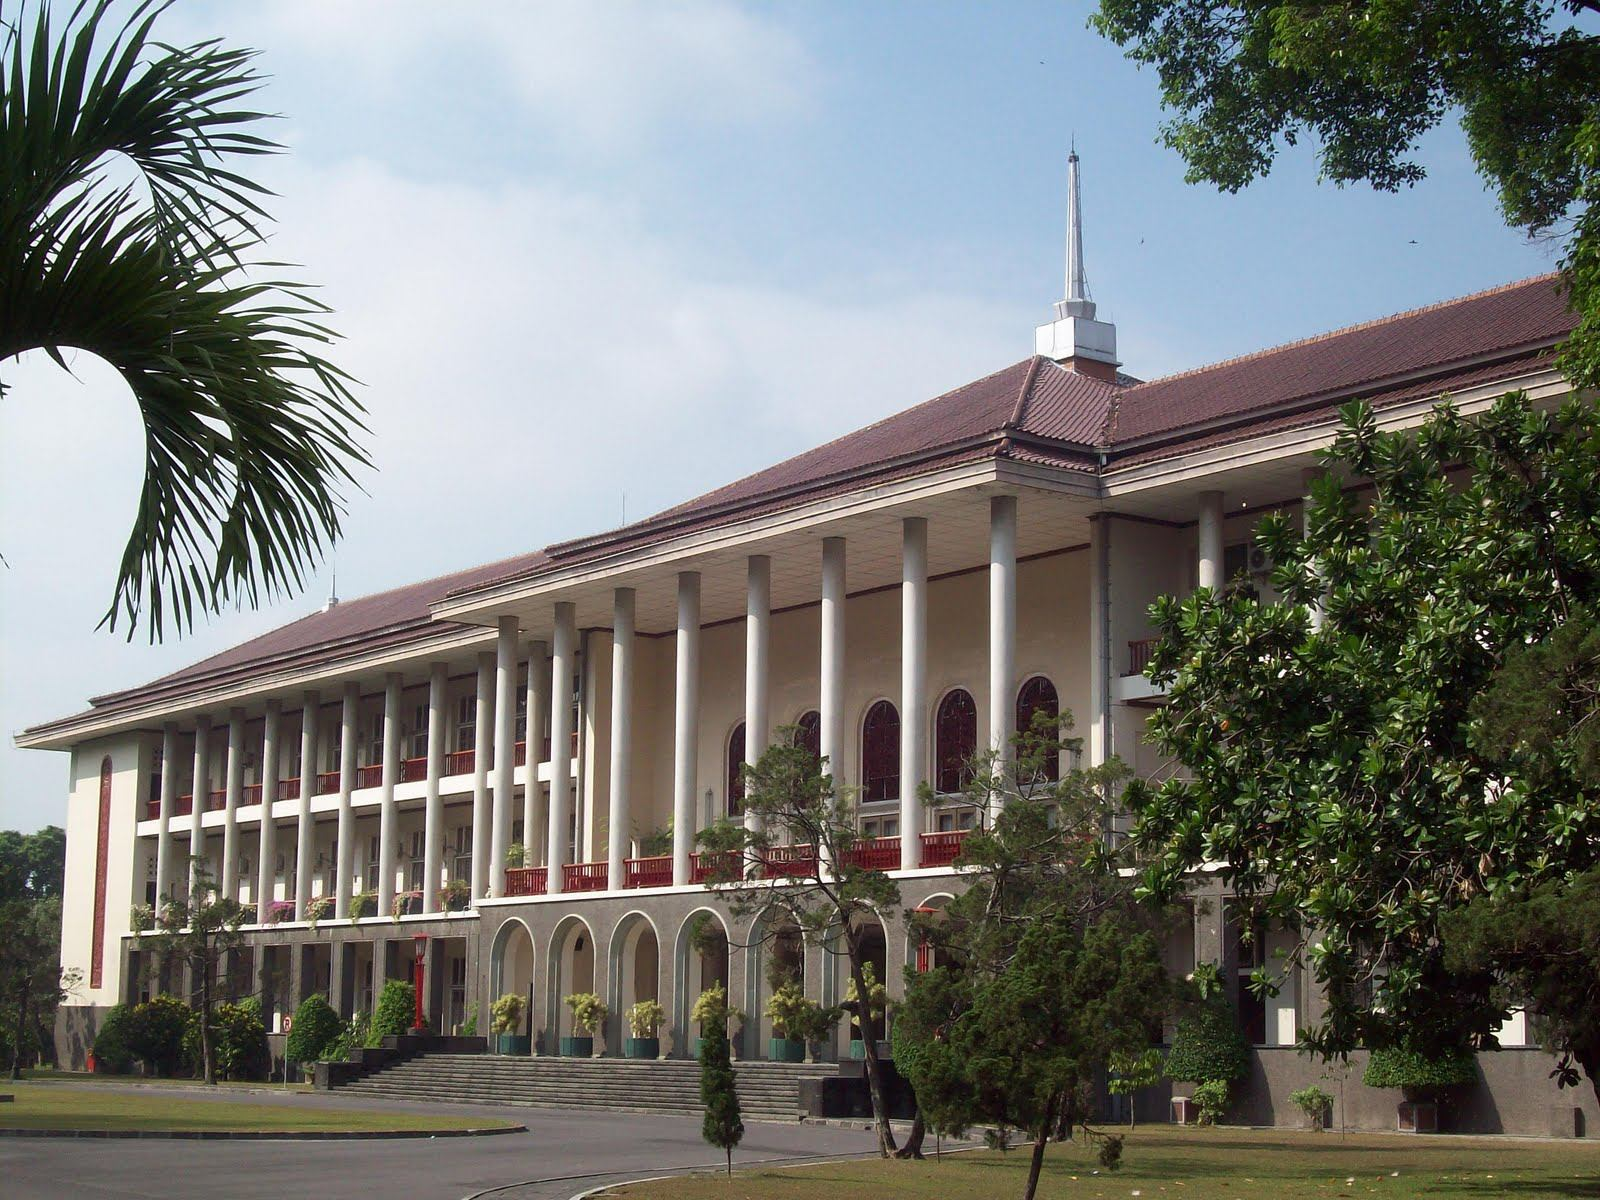 Gadjah Mada University is one of the oldest and most prestigious universities in Indonesia, and home to the AIFIS office in Yogyakarta.